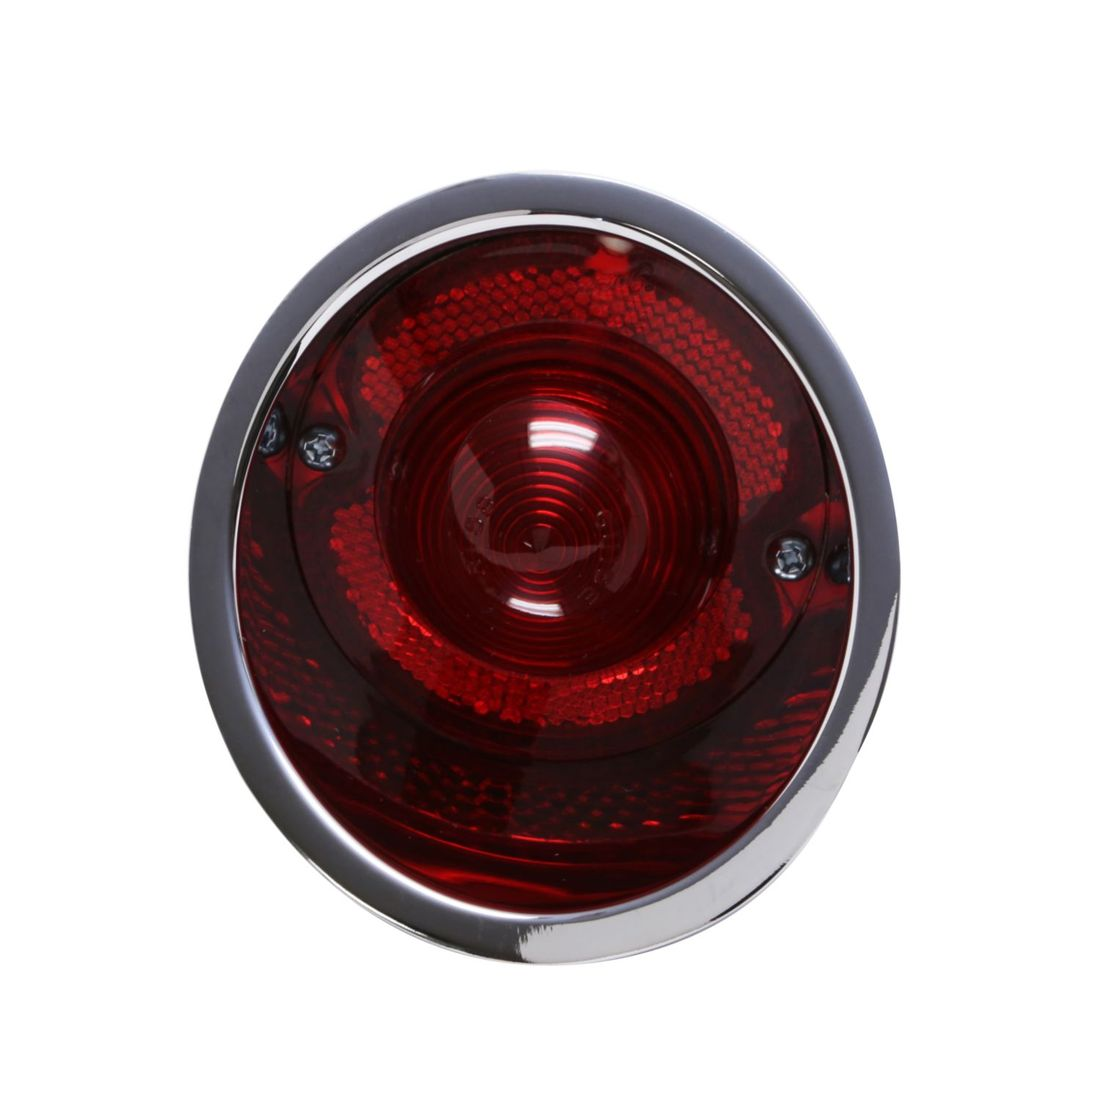 American Shifter 278430 Shift Knob Red VW Hands Clear Metal Flake with M16 x 1.5 Insert